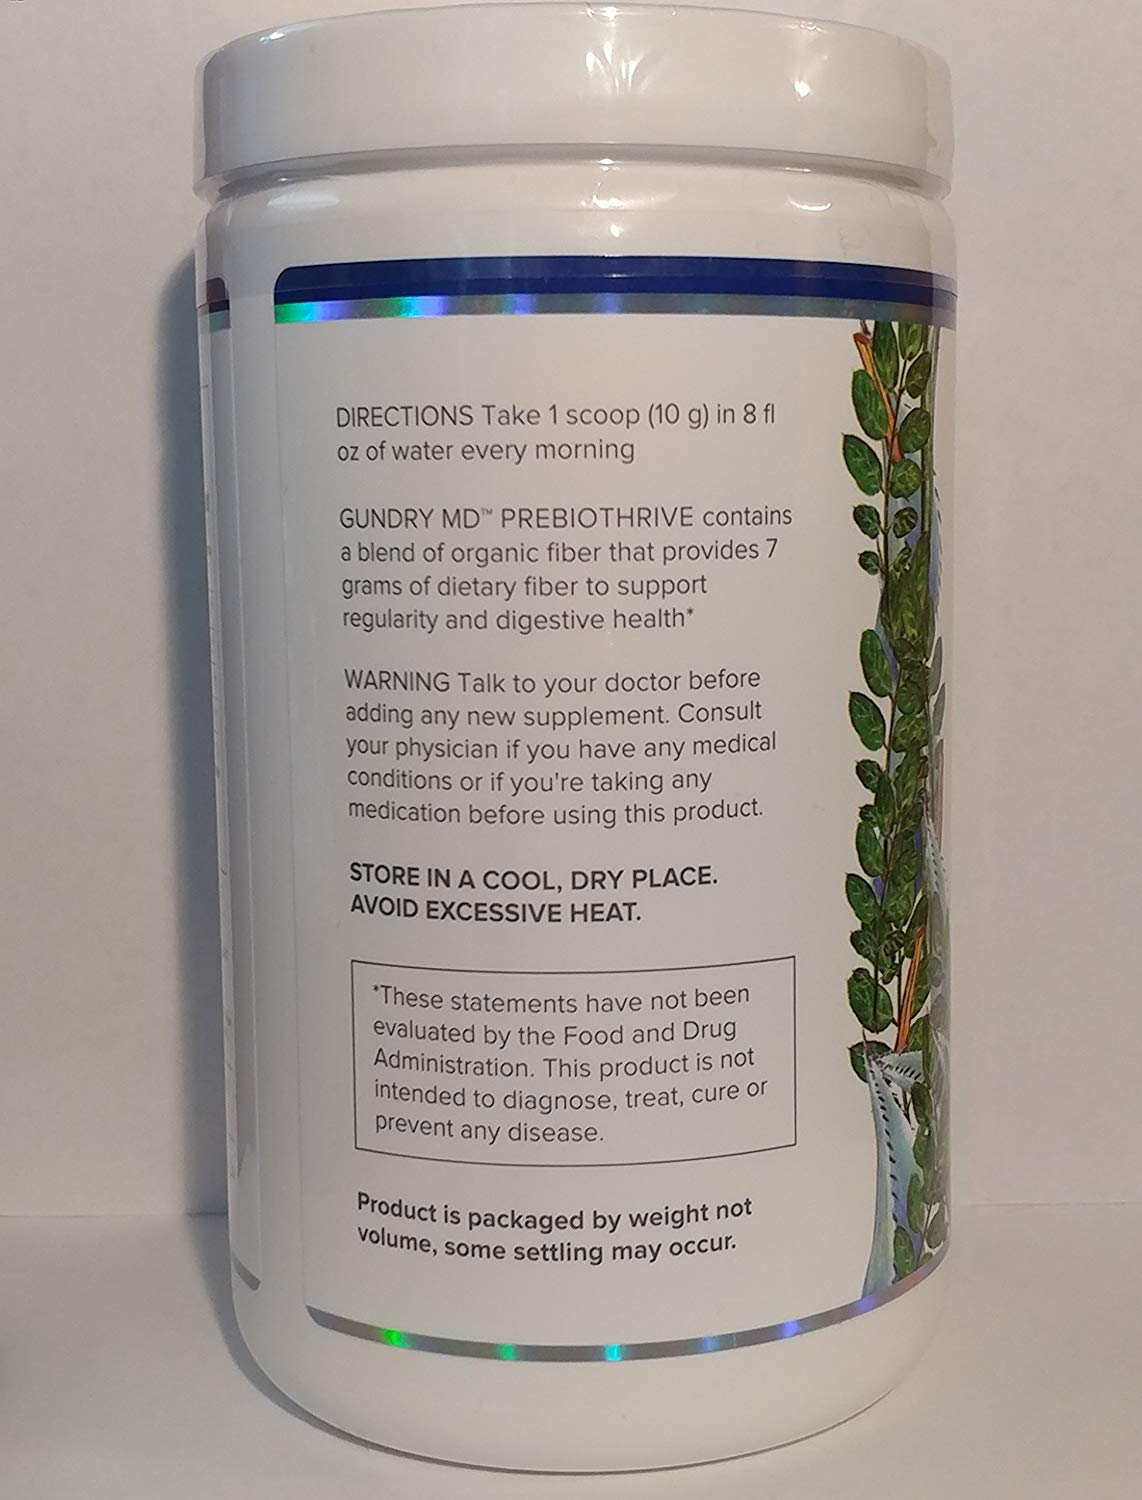 Backside of Bottle of Gundry MD PrebioThrive